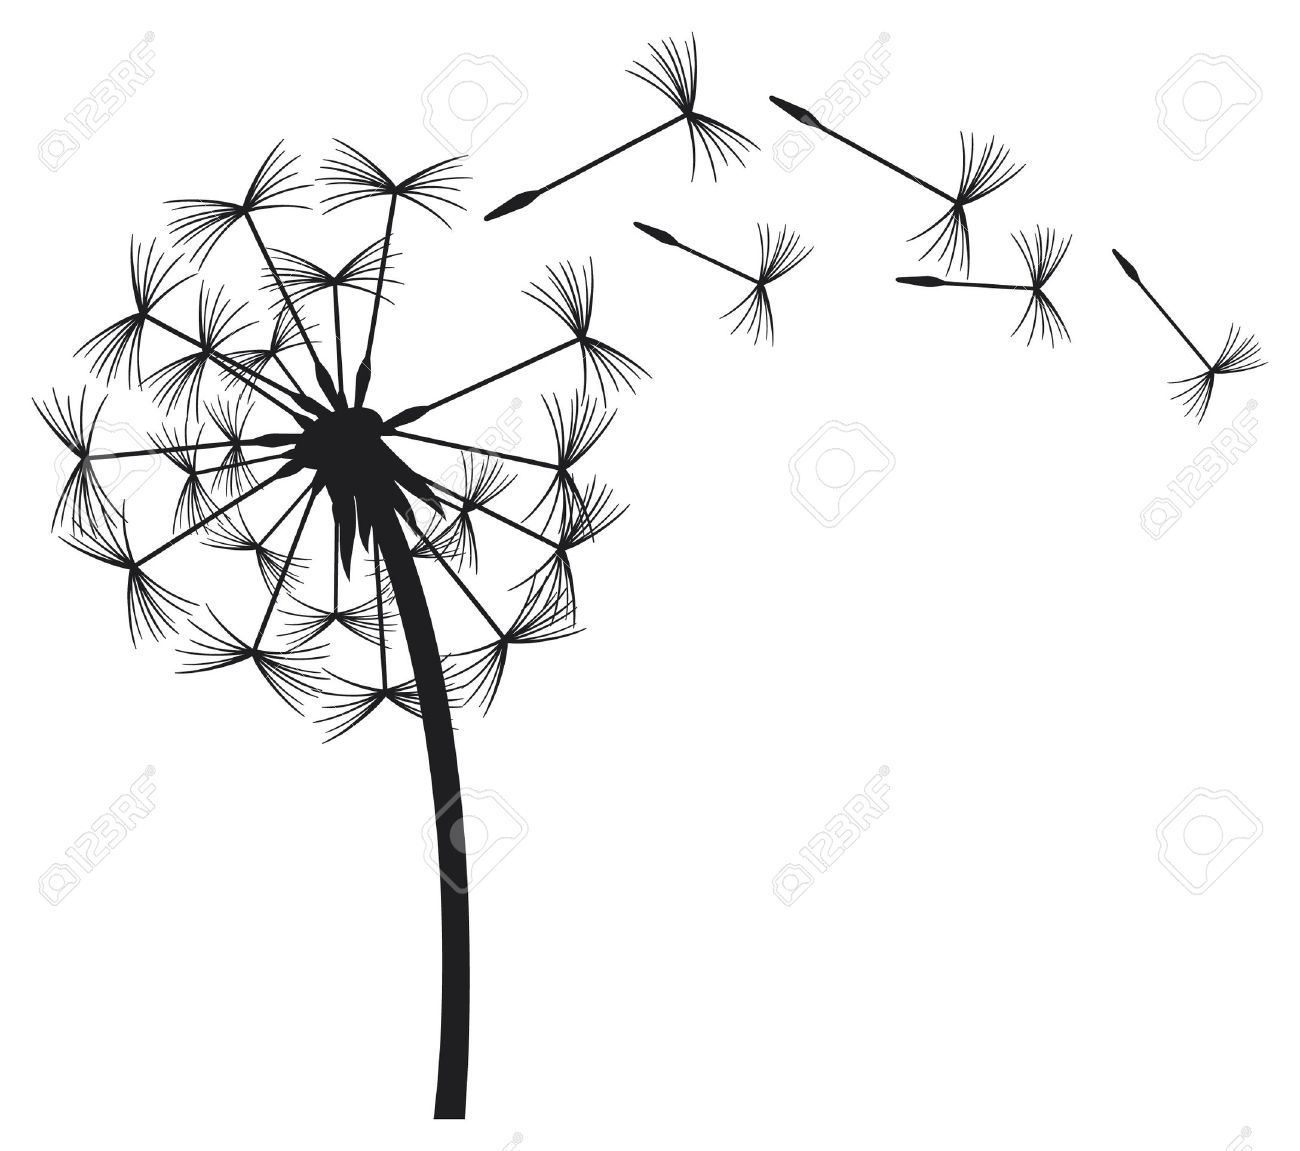 dandelions blowing the wind coloring pages | Blowing Dandelion Stock Vector Illustration And Royalty ...